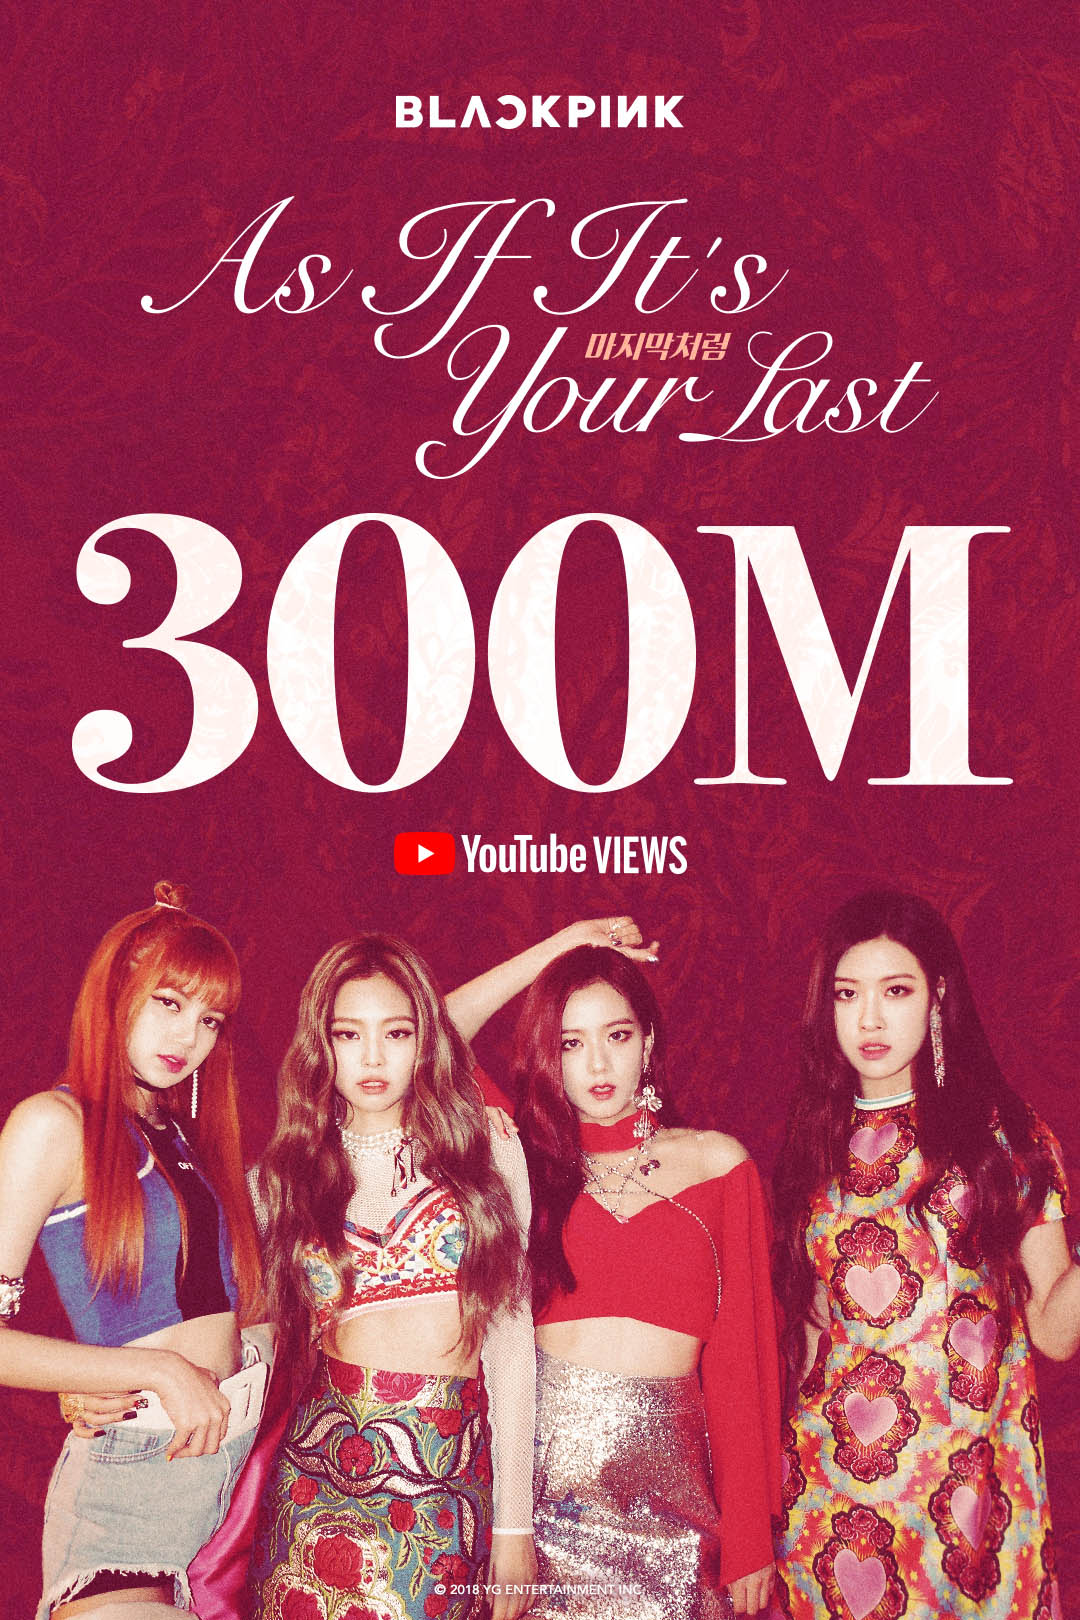 Black Pink's 'As If It's Your Last' music video hits 300 million Youtube views